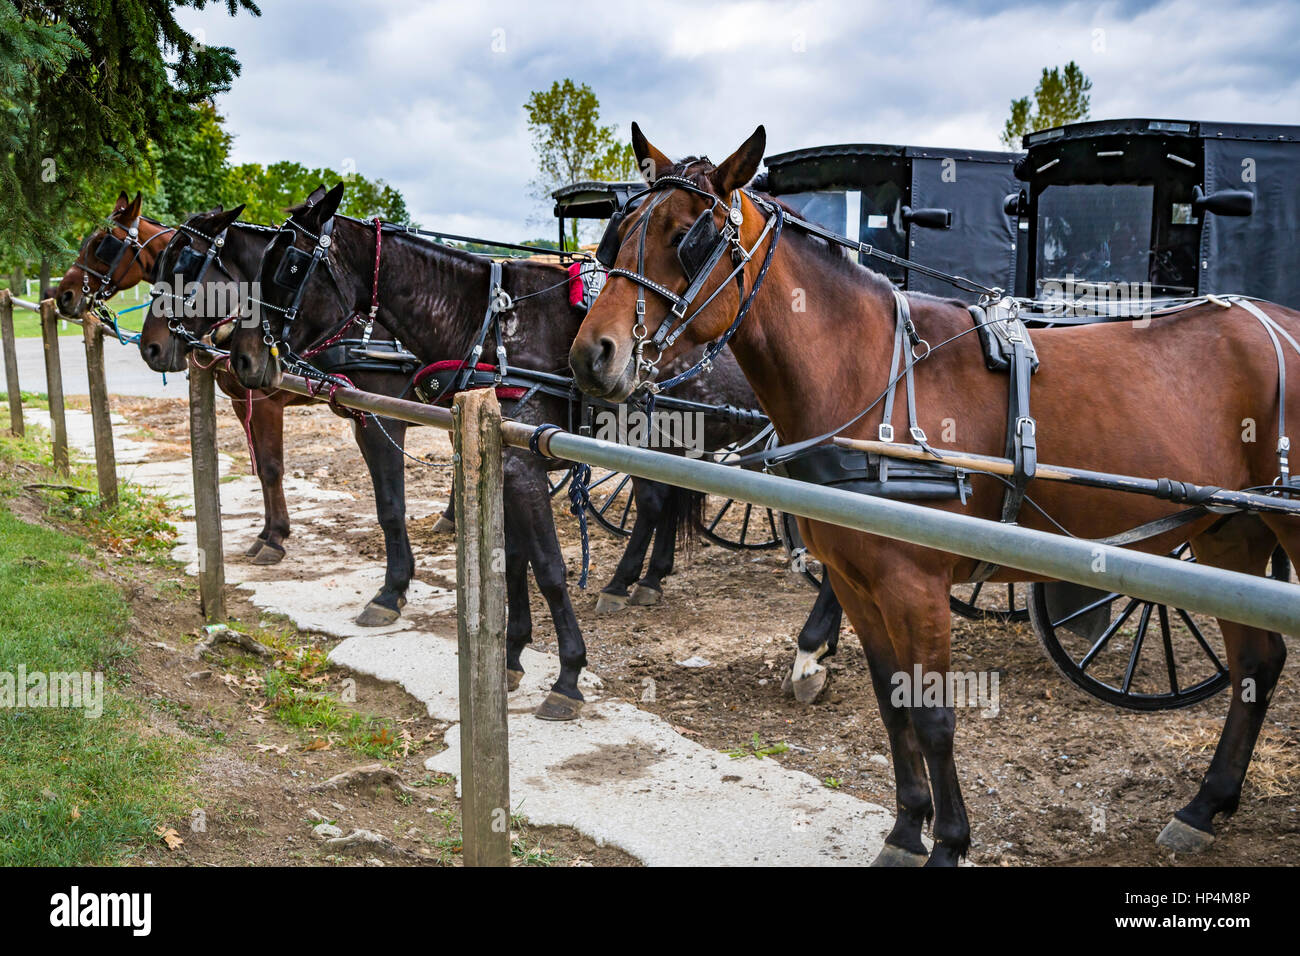 Amish horse and buggies at a hitching post in Dalton, Ohio